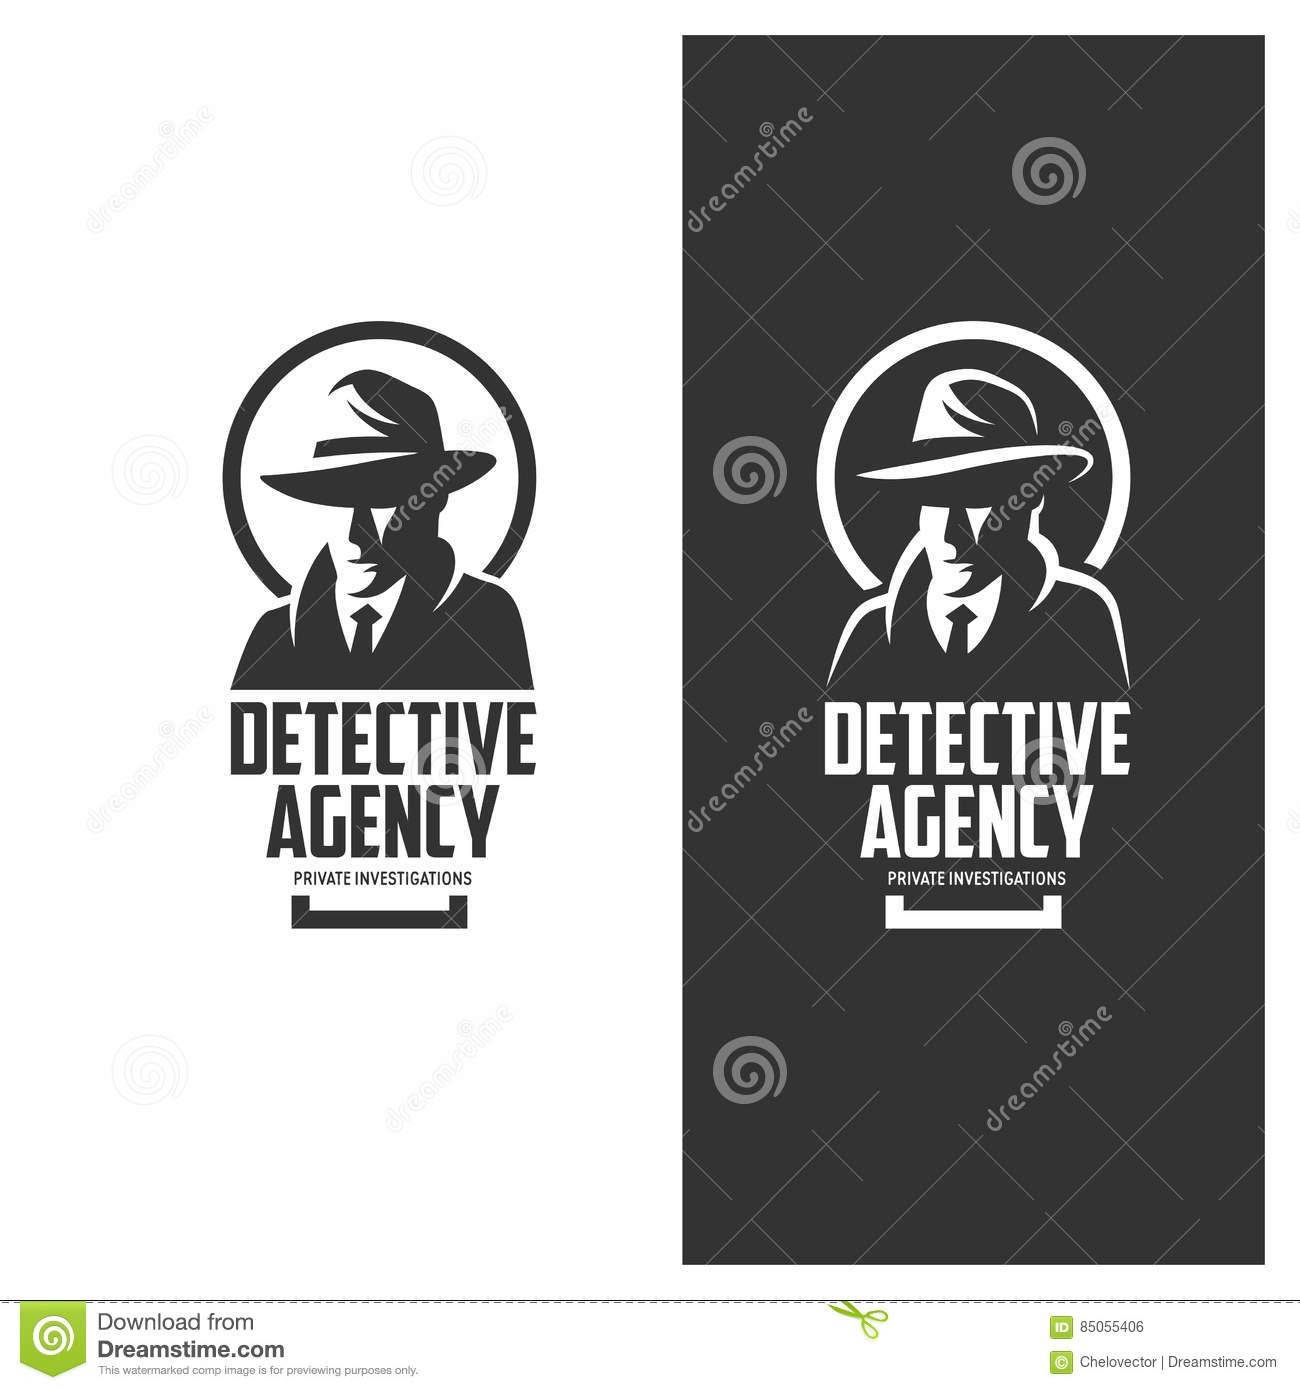 d649aaf927c Detective agency emblem with abstract man head in hat. Vintage vector  illustration.